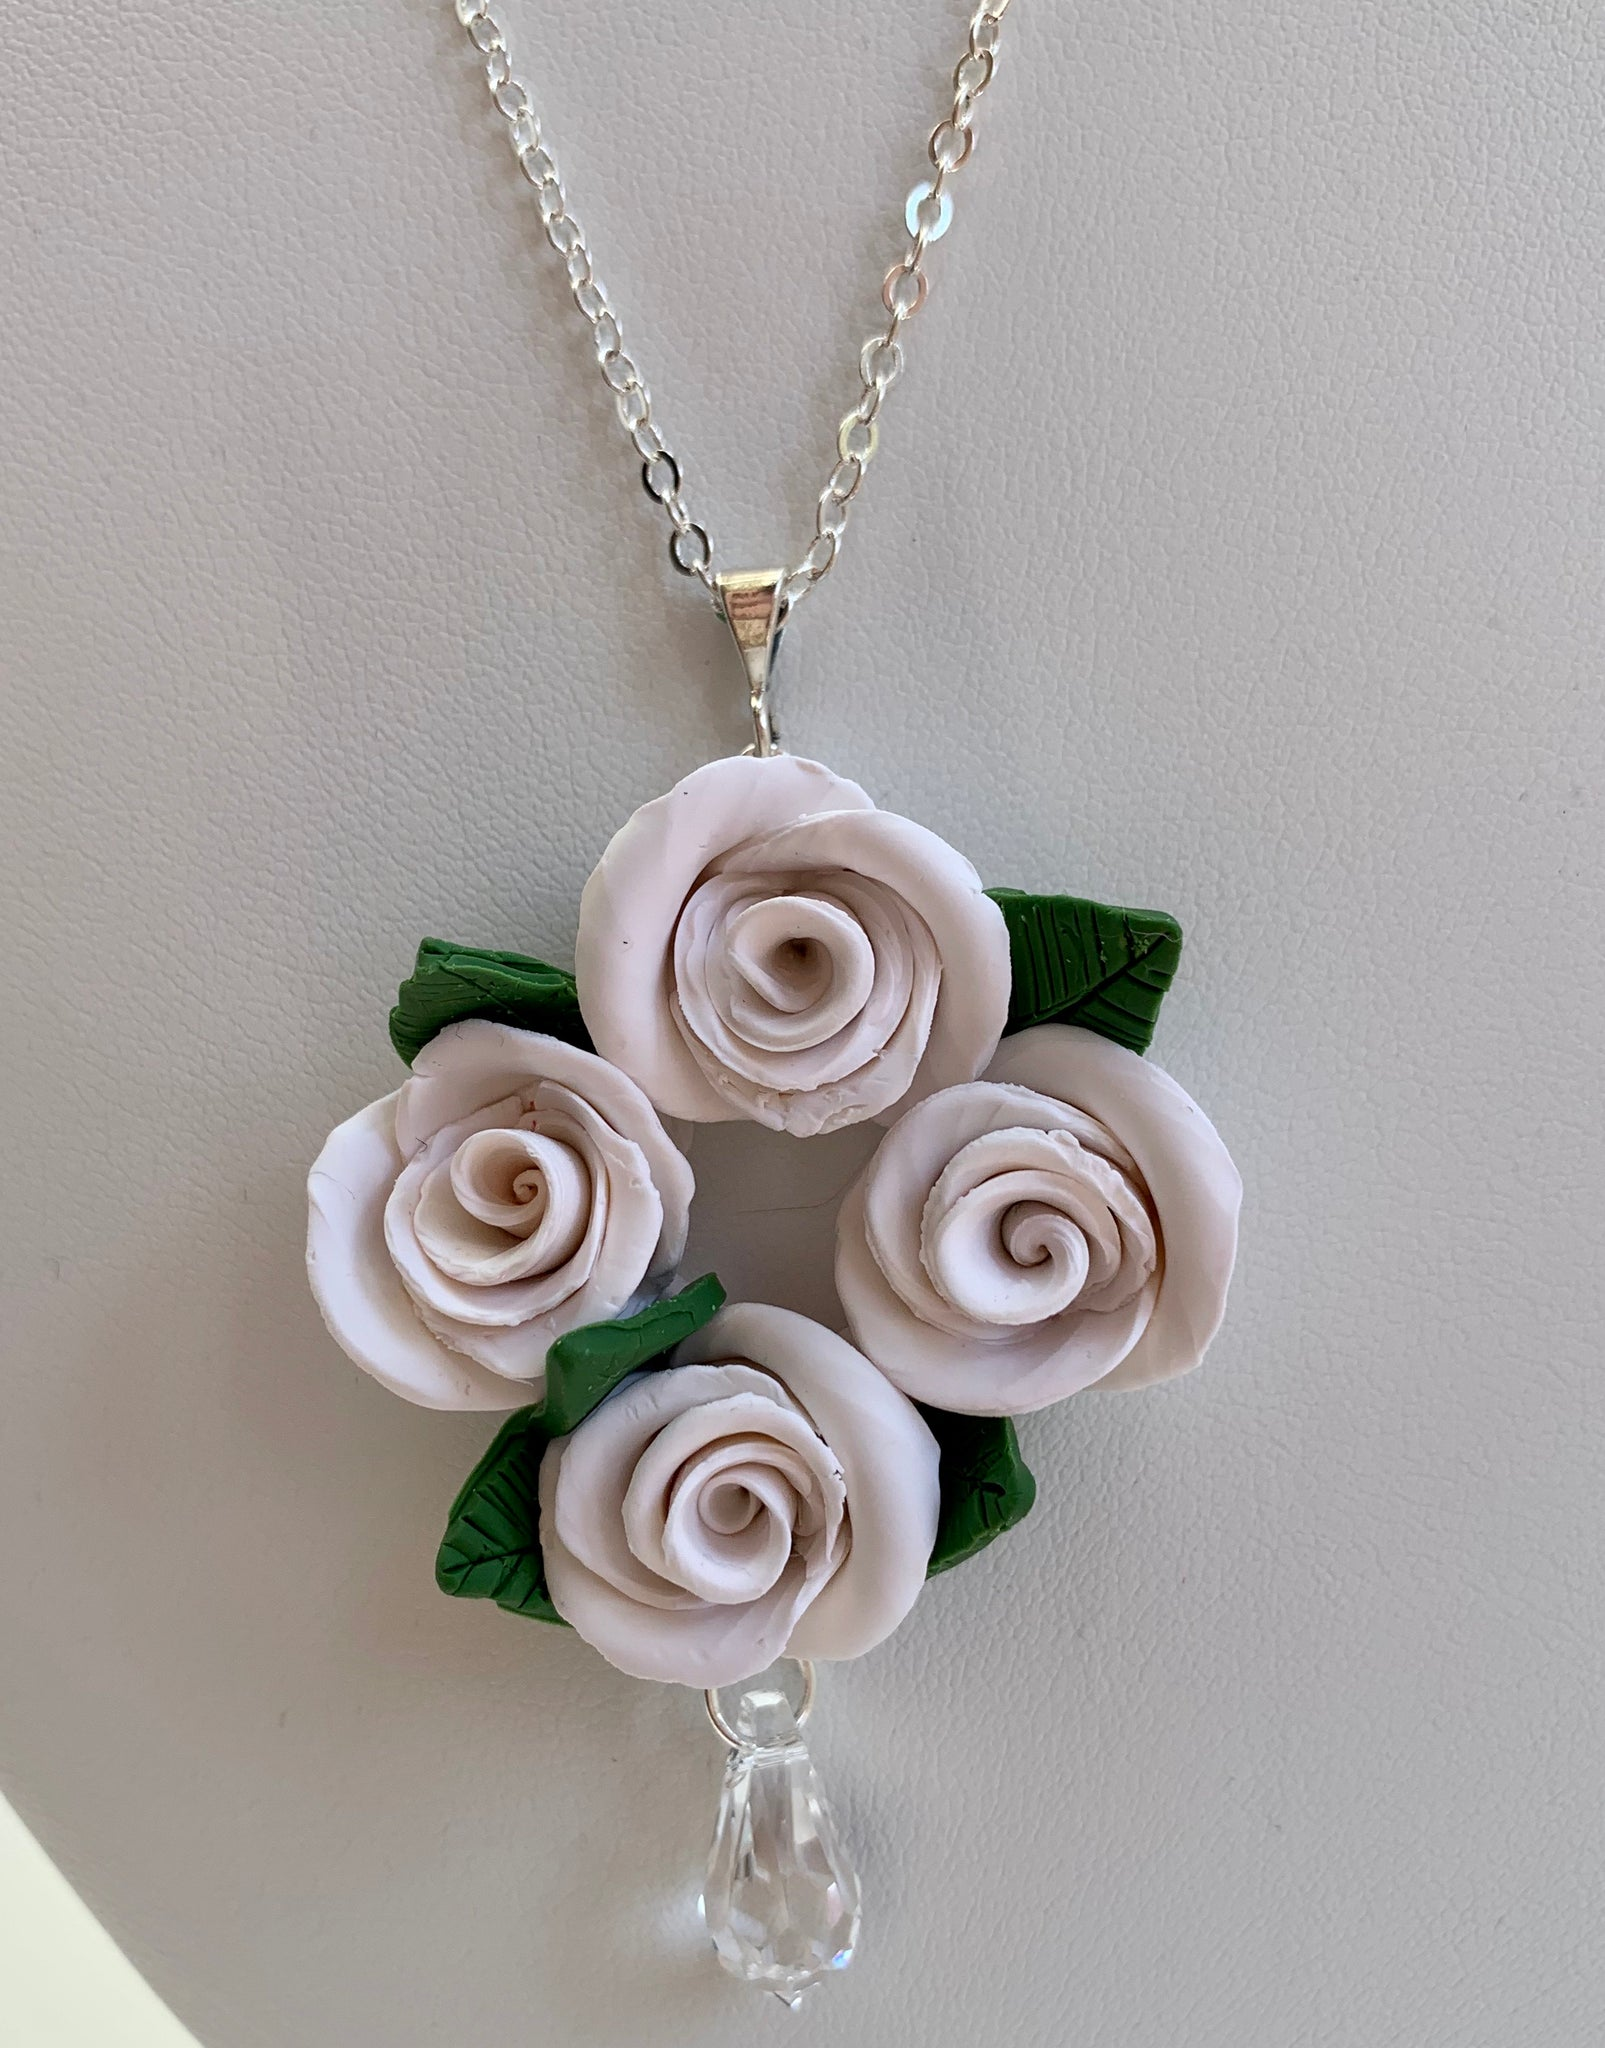 White rose and crystal necklace